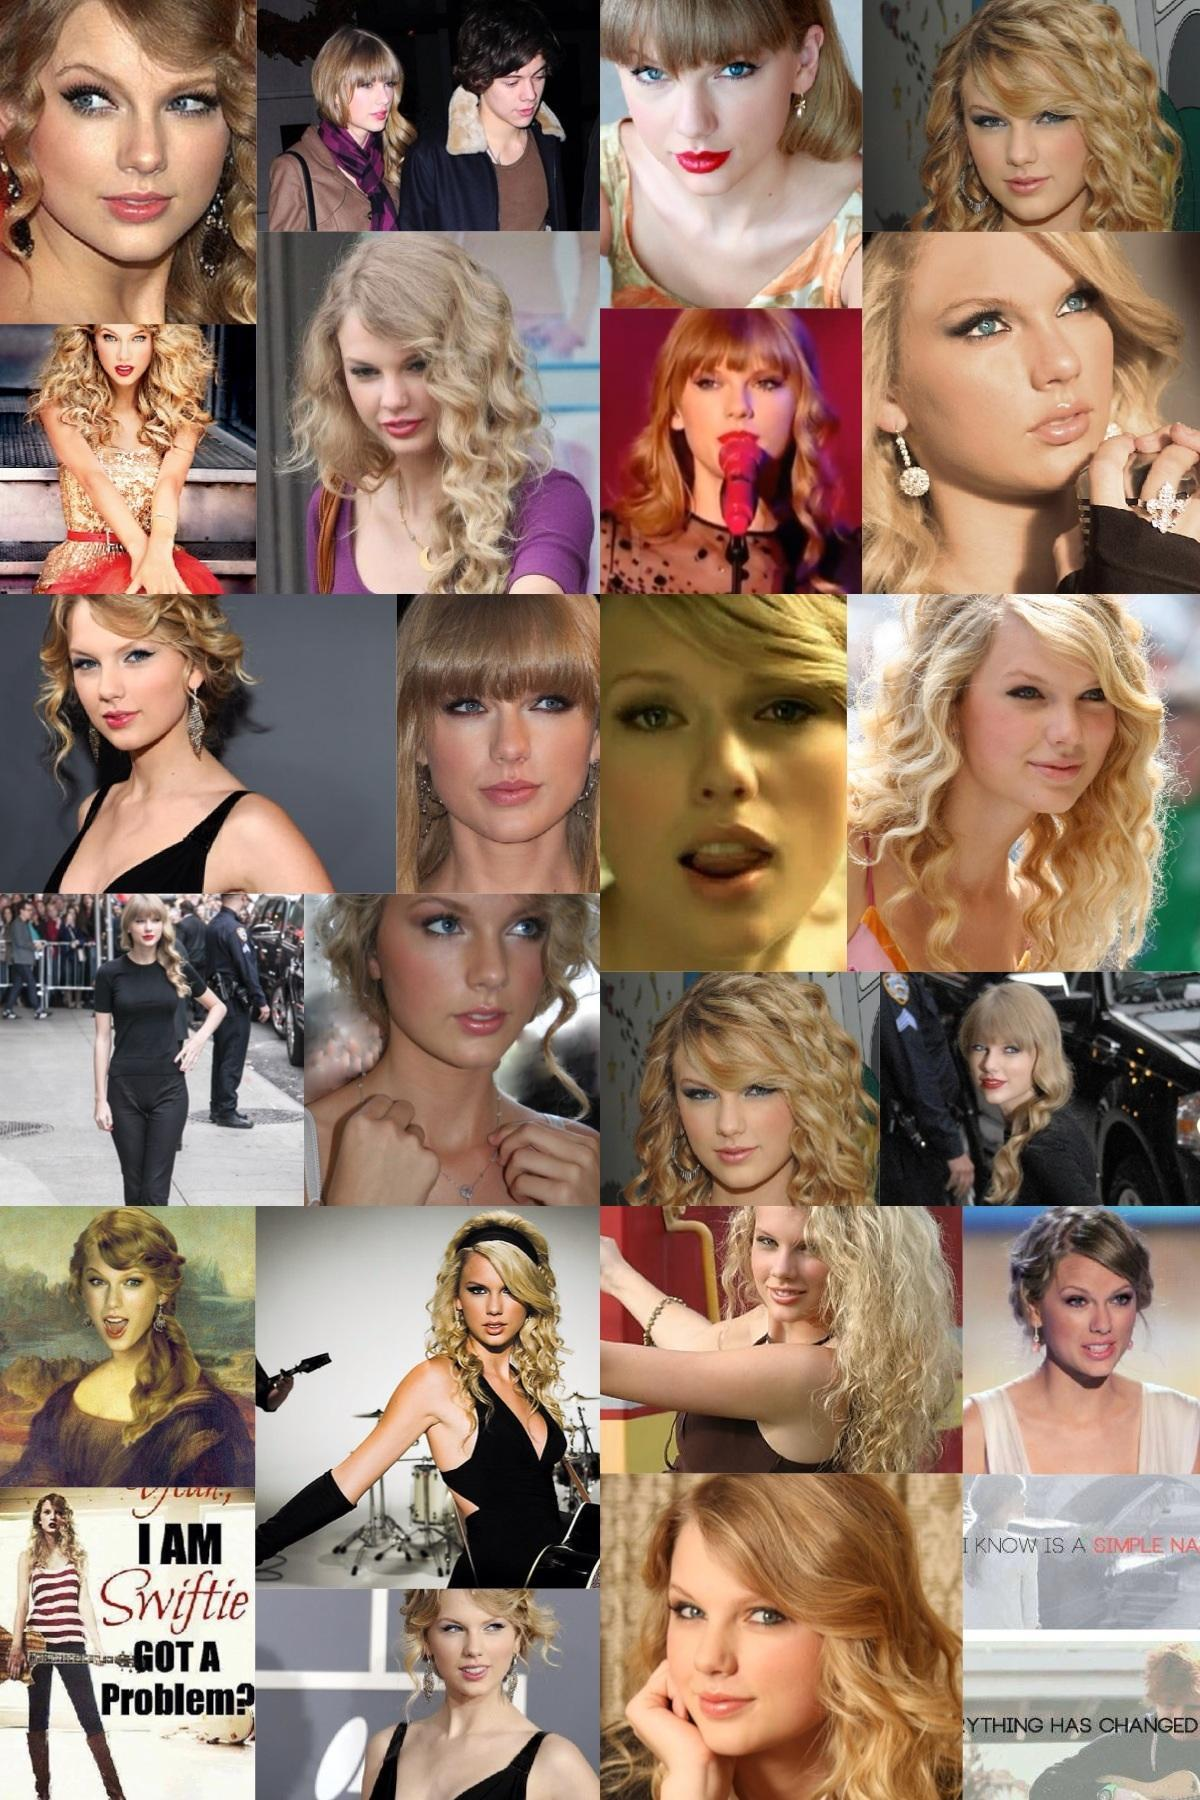 Are you a real Swiftie?? xoxo